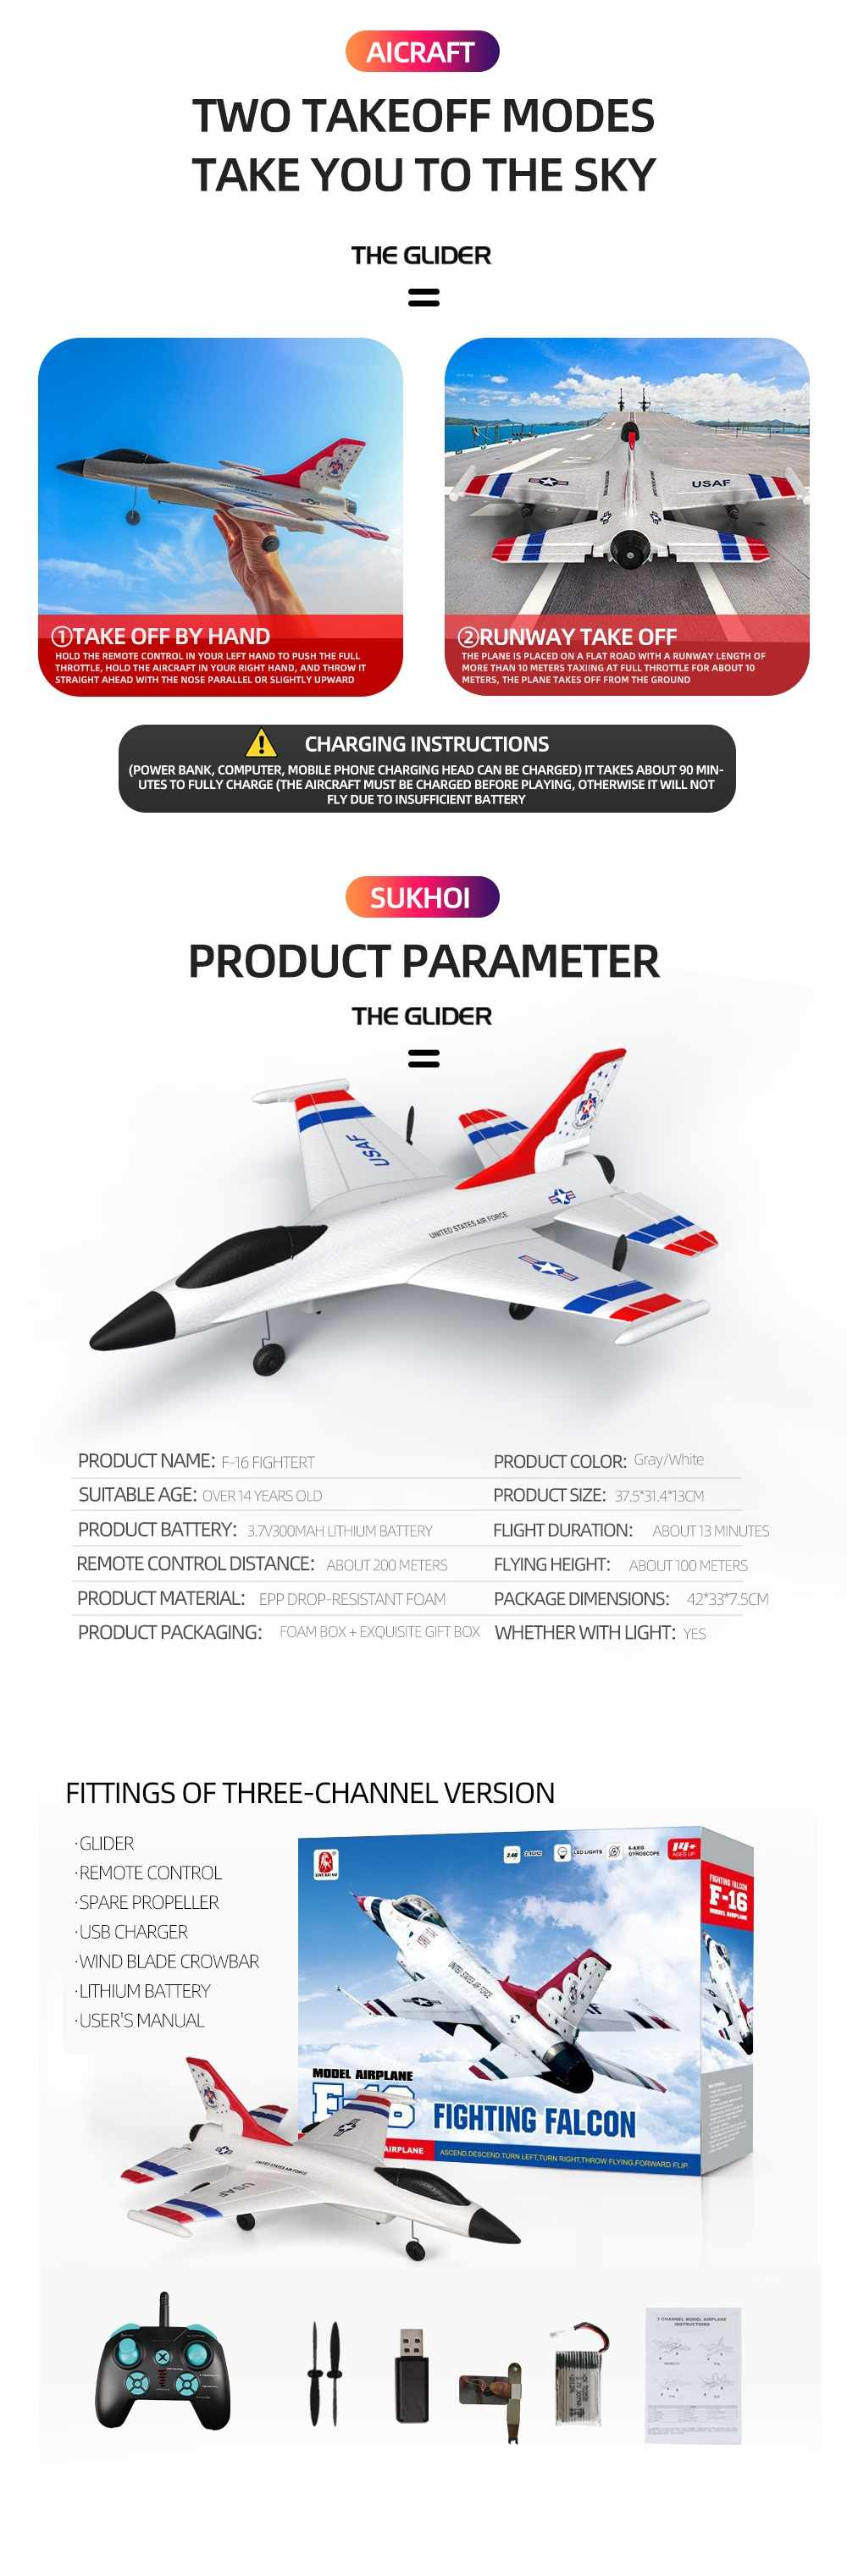 Hecfa03f49a9a4bc195a569fd78b150b5N - SUKHOI F16 314mm Wingspan 2.4Ghz 3CH Six-axis Gyroscope RTF RC Airplane Glider EPP RC Aircraft Remote control Outdoor Toys